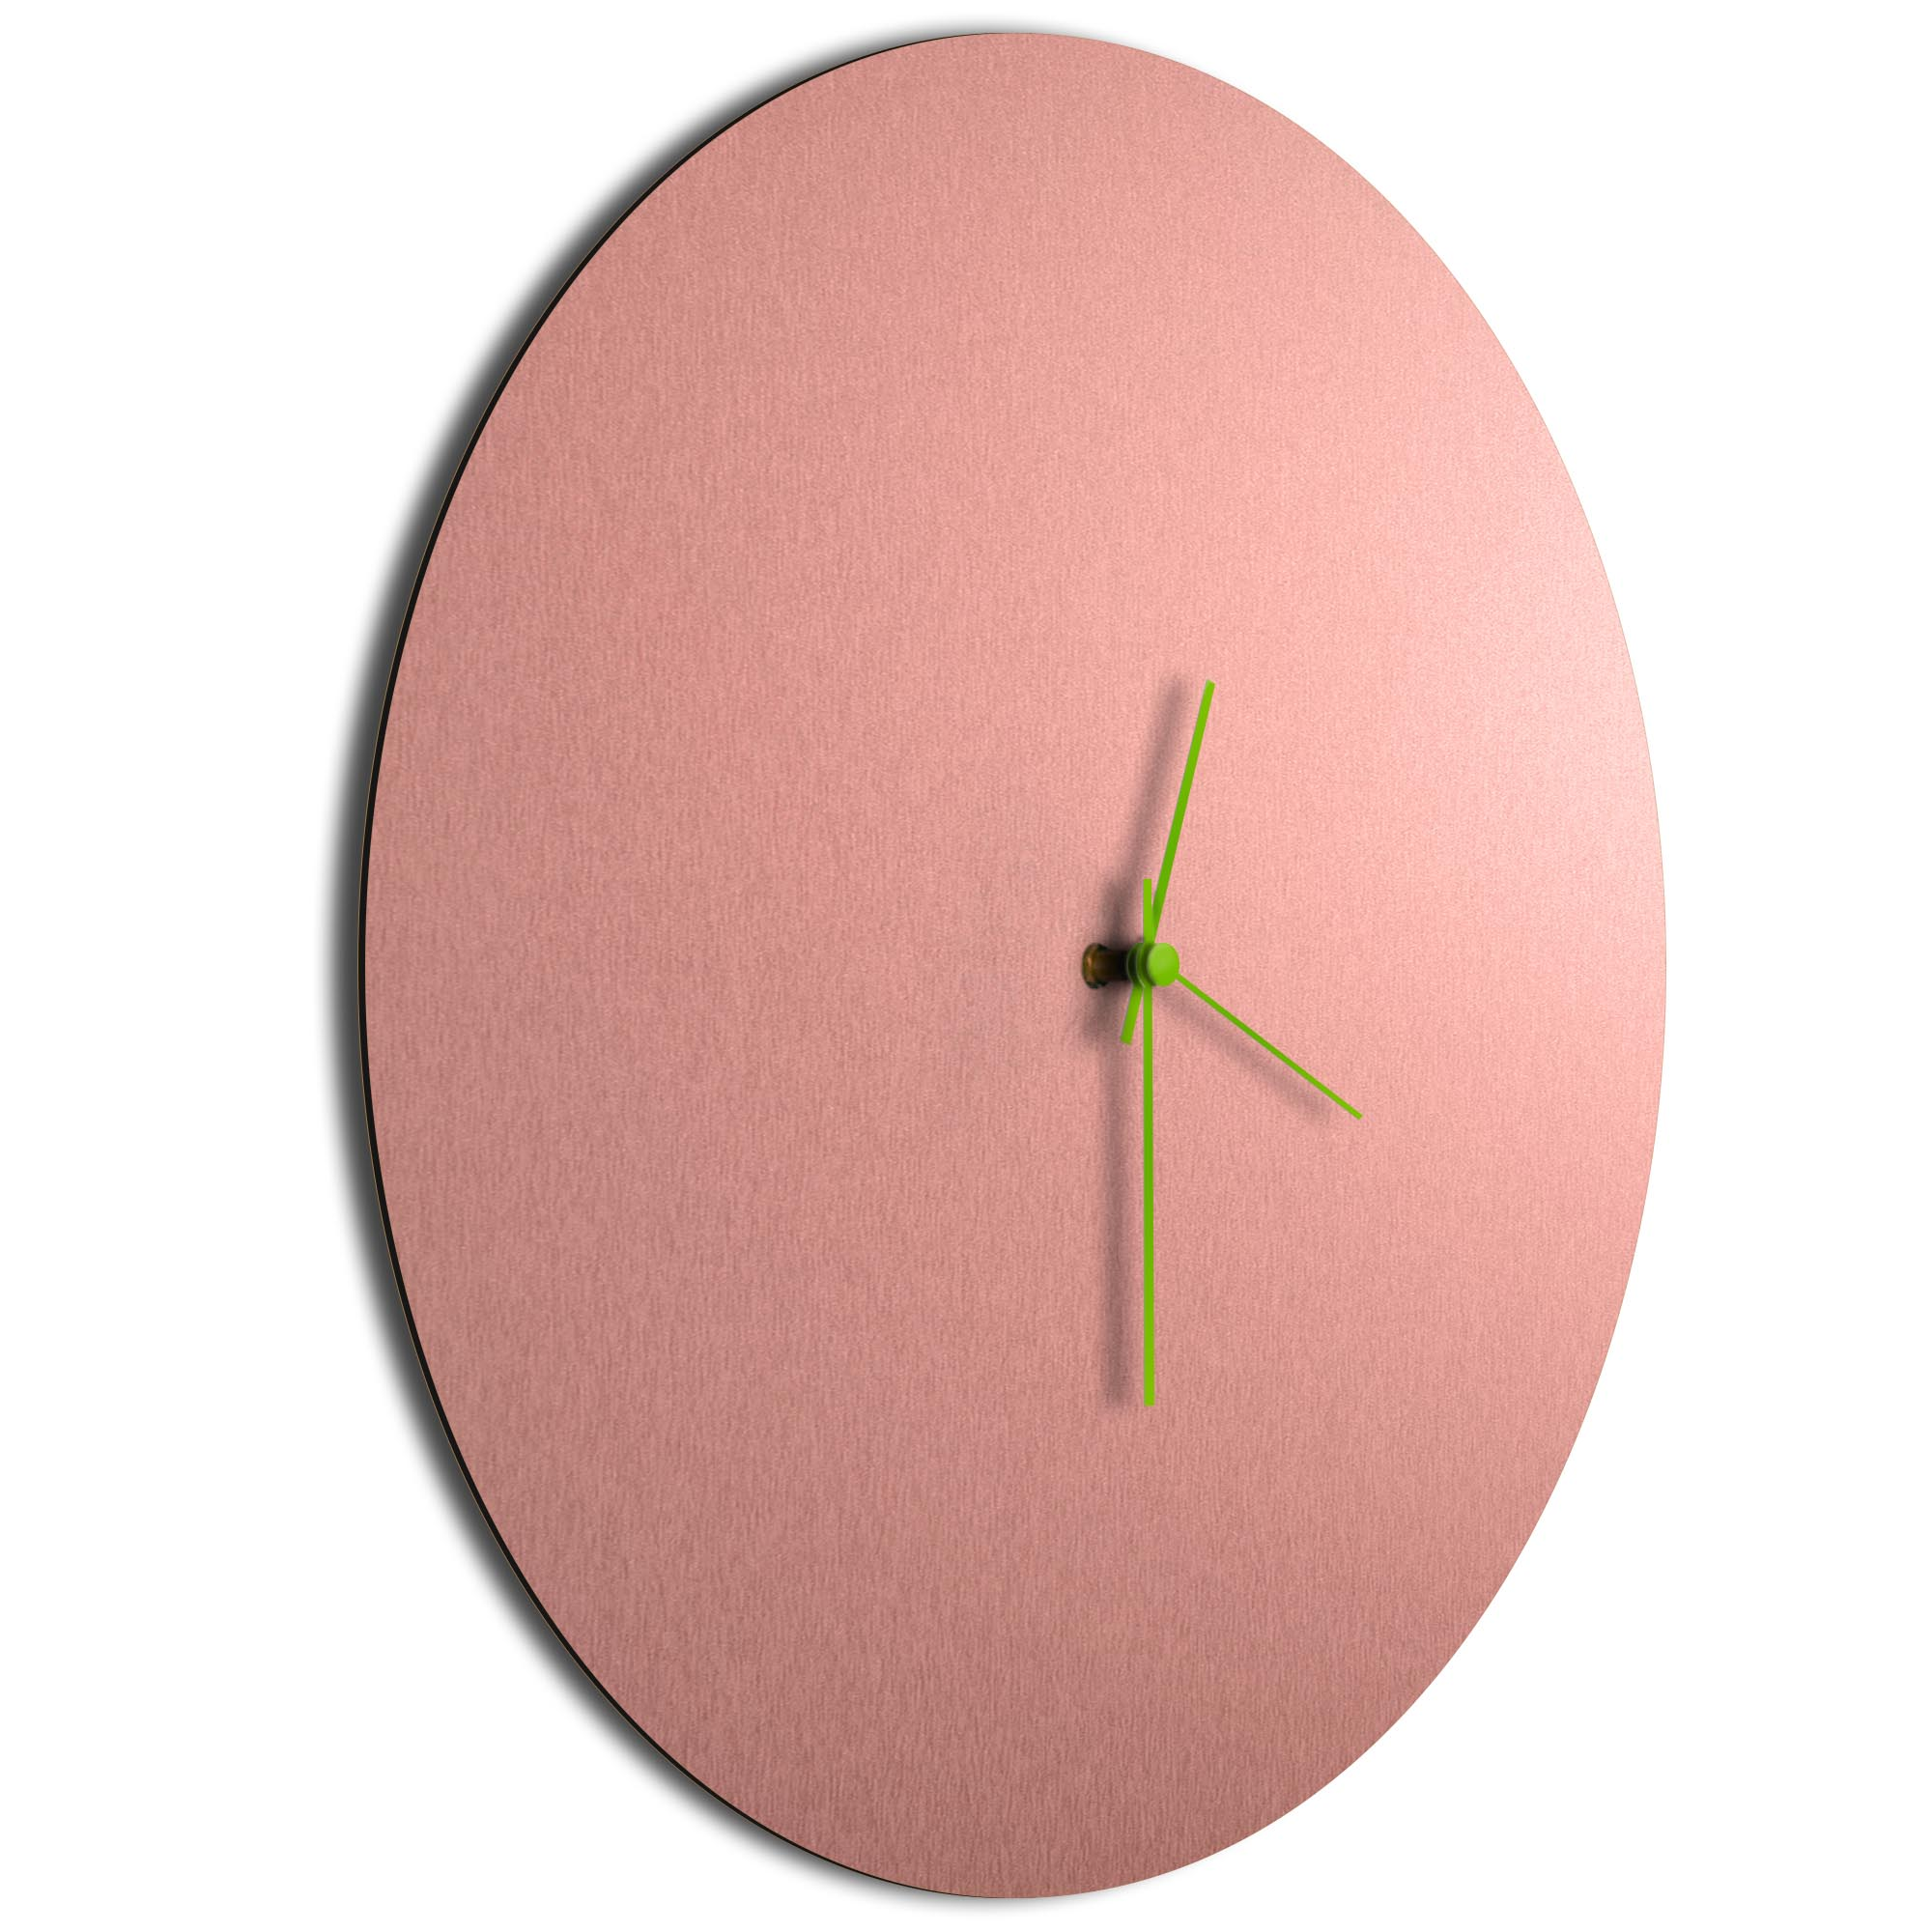 Coppersmith Circle Clock Large Green - Image 2